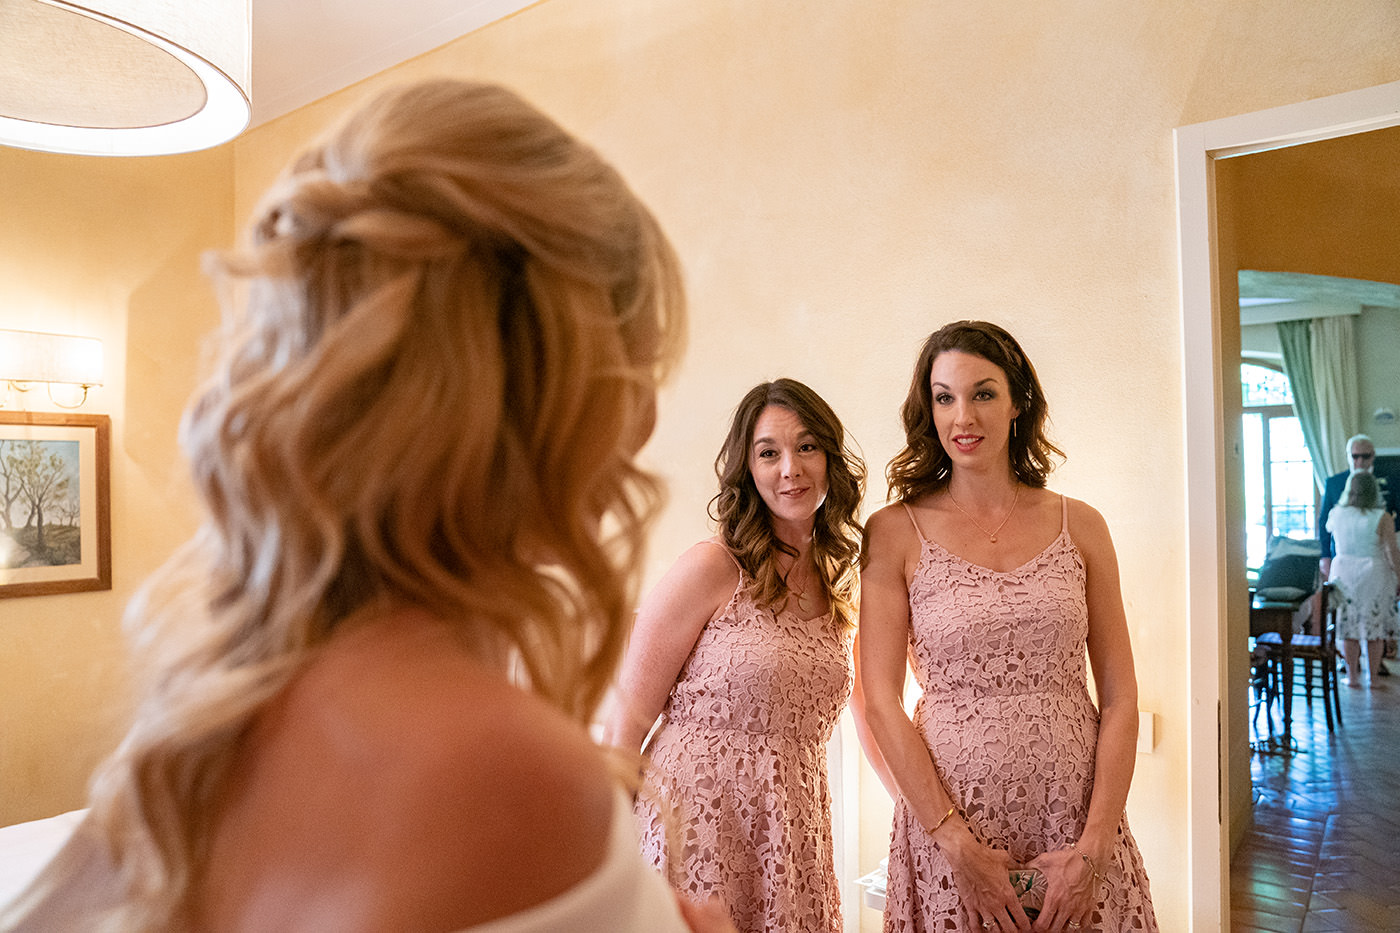 Tuscan Wedding Photo Shoots At Palagio Castle: bridesmades look at the bride